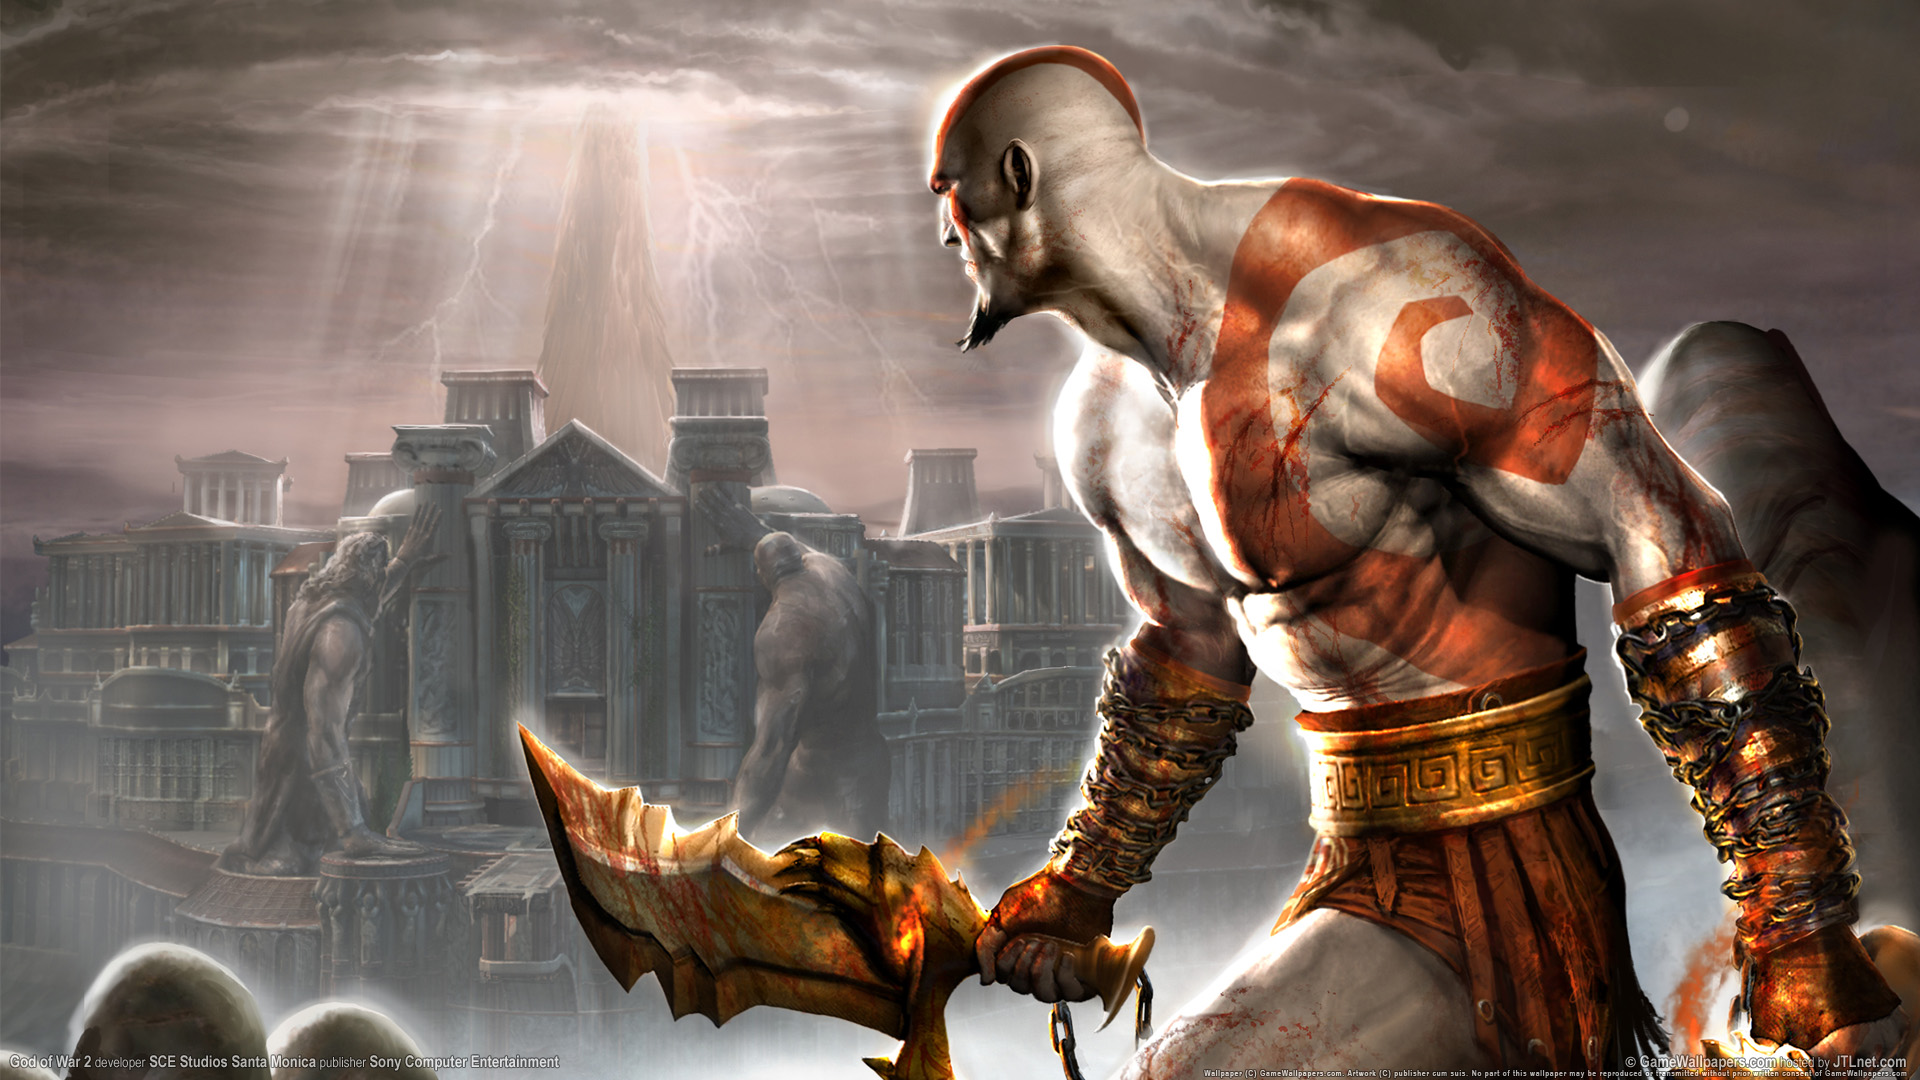 Crazy Iphone 5 Wallpapers God Of War 2 Ps2 Game Wallpapers Hd Wallpapers Id 1552